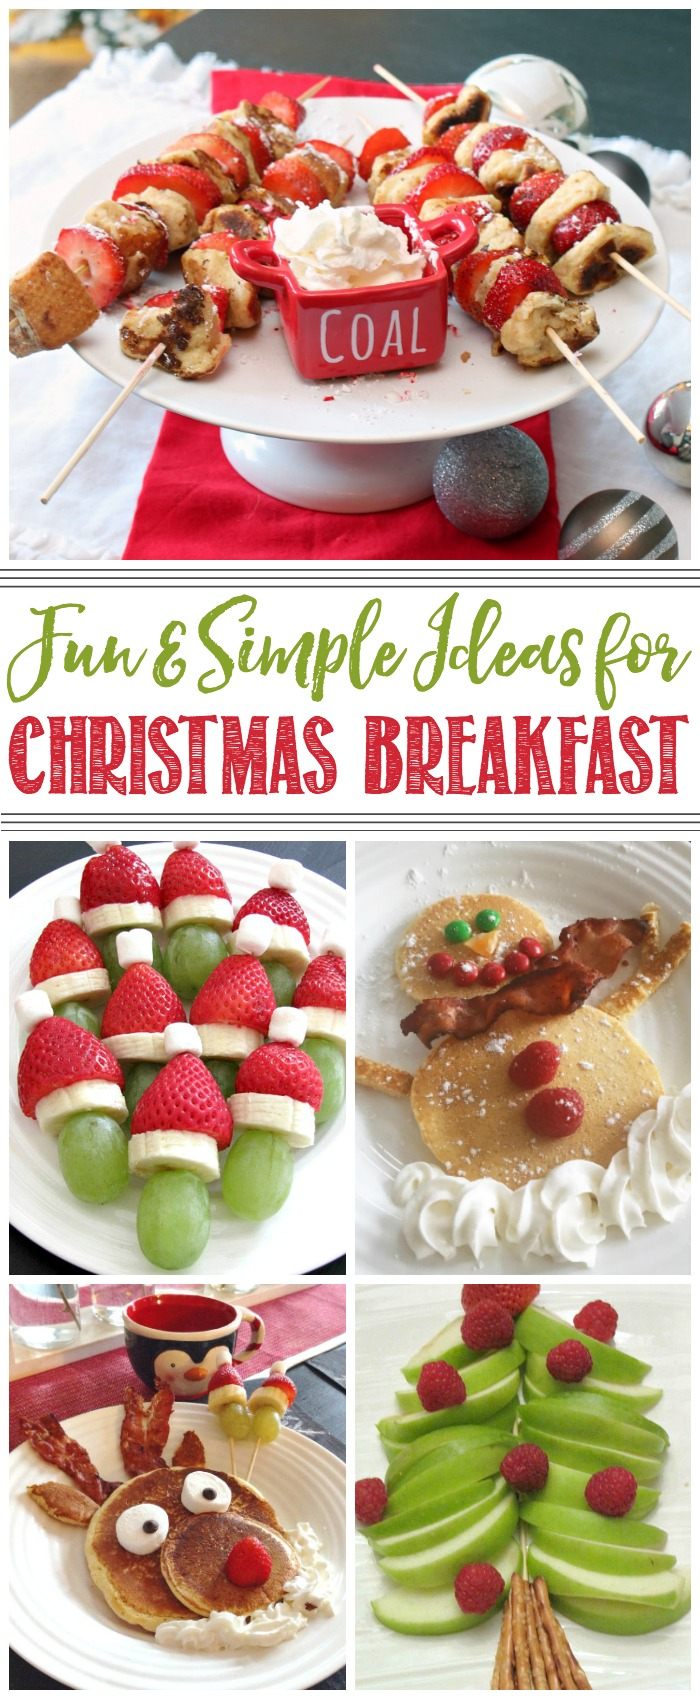 Fun and simple ideas for Christmas breakfast. I love all of these!